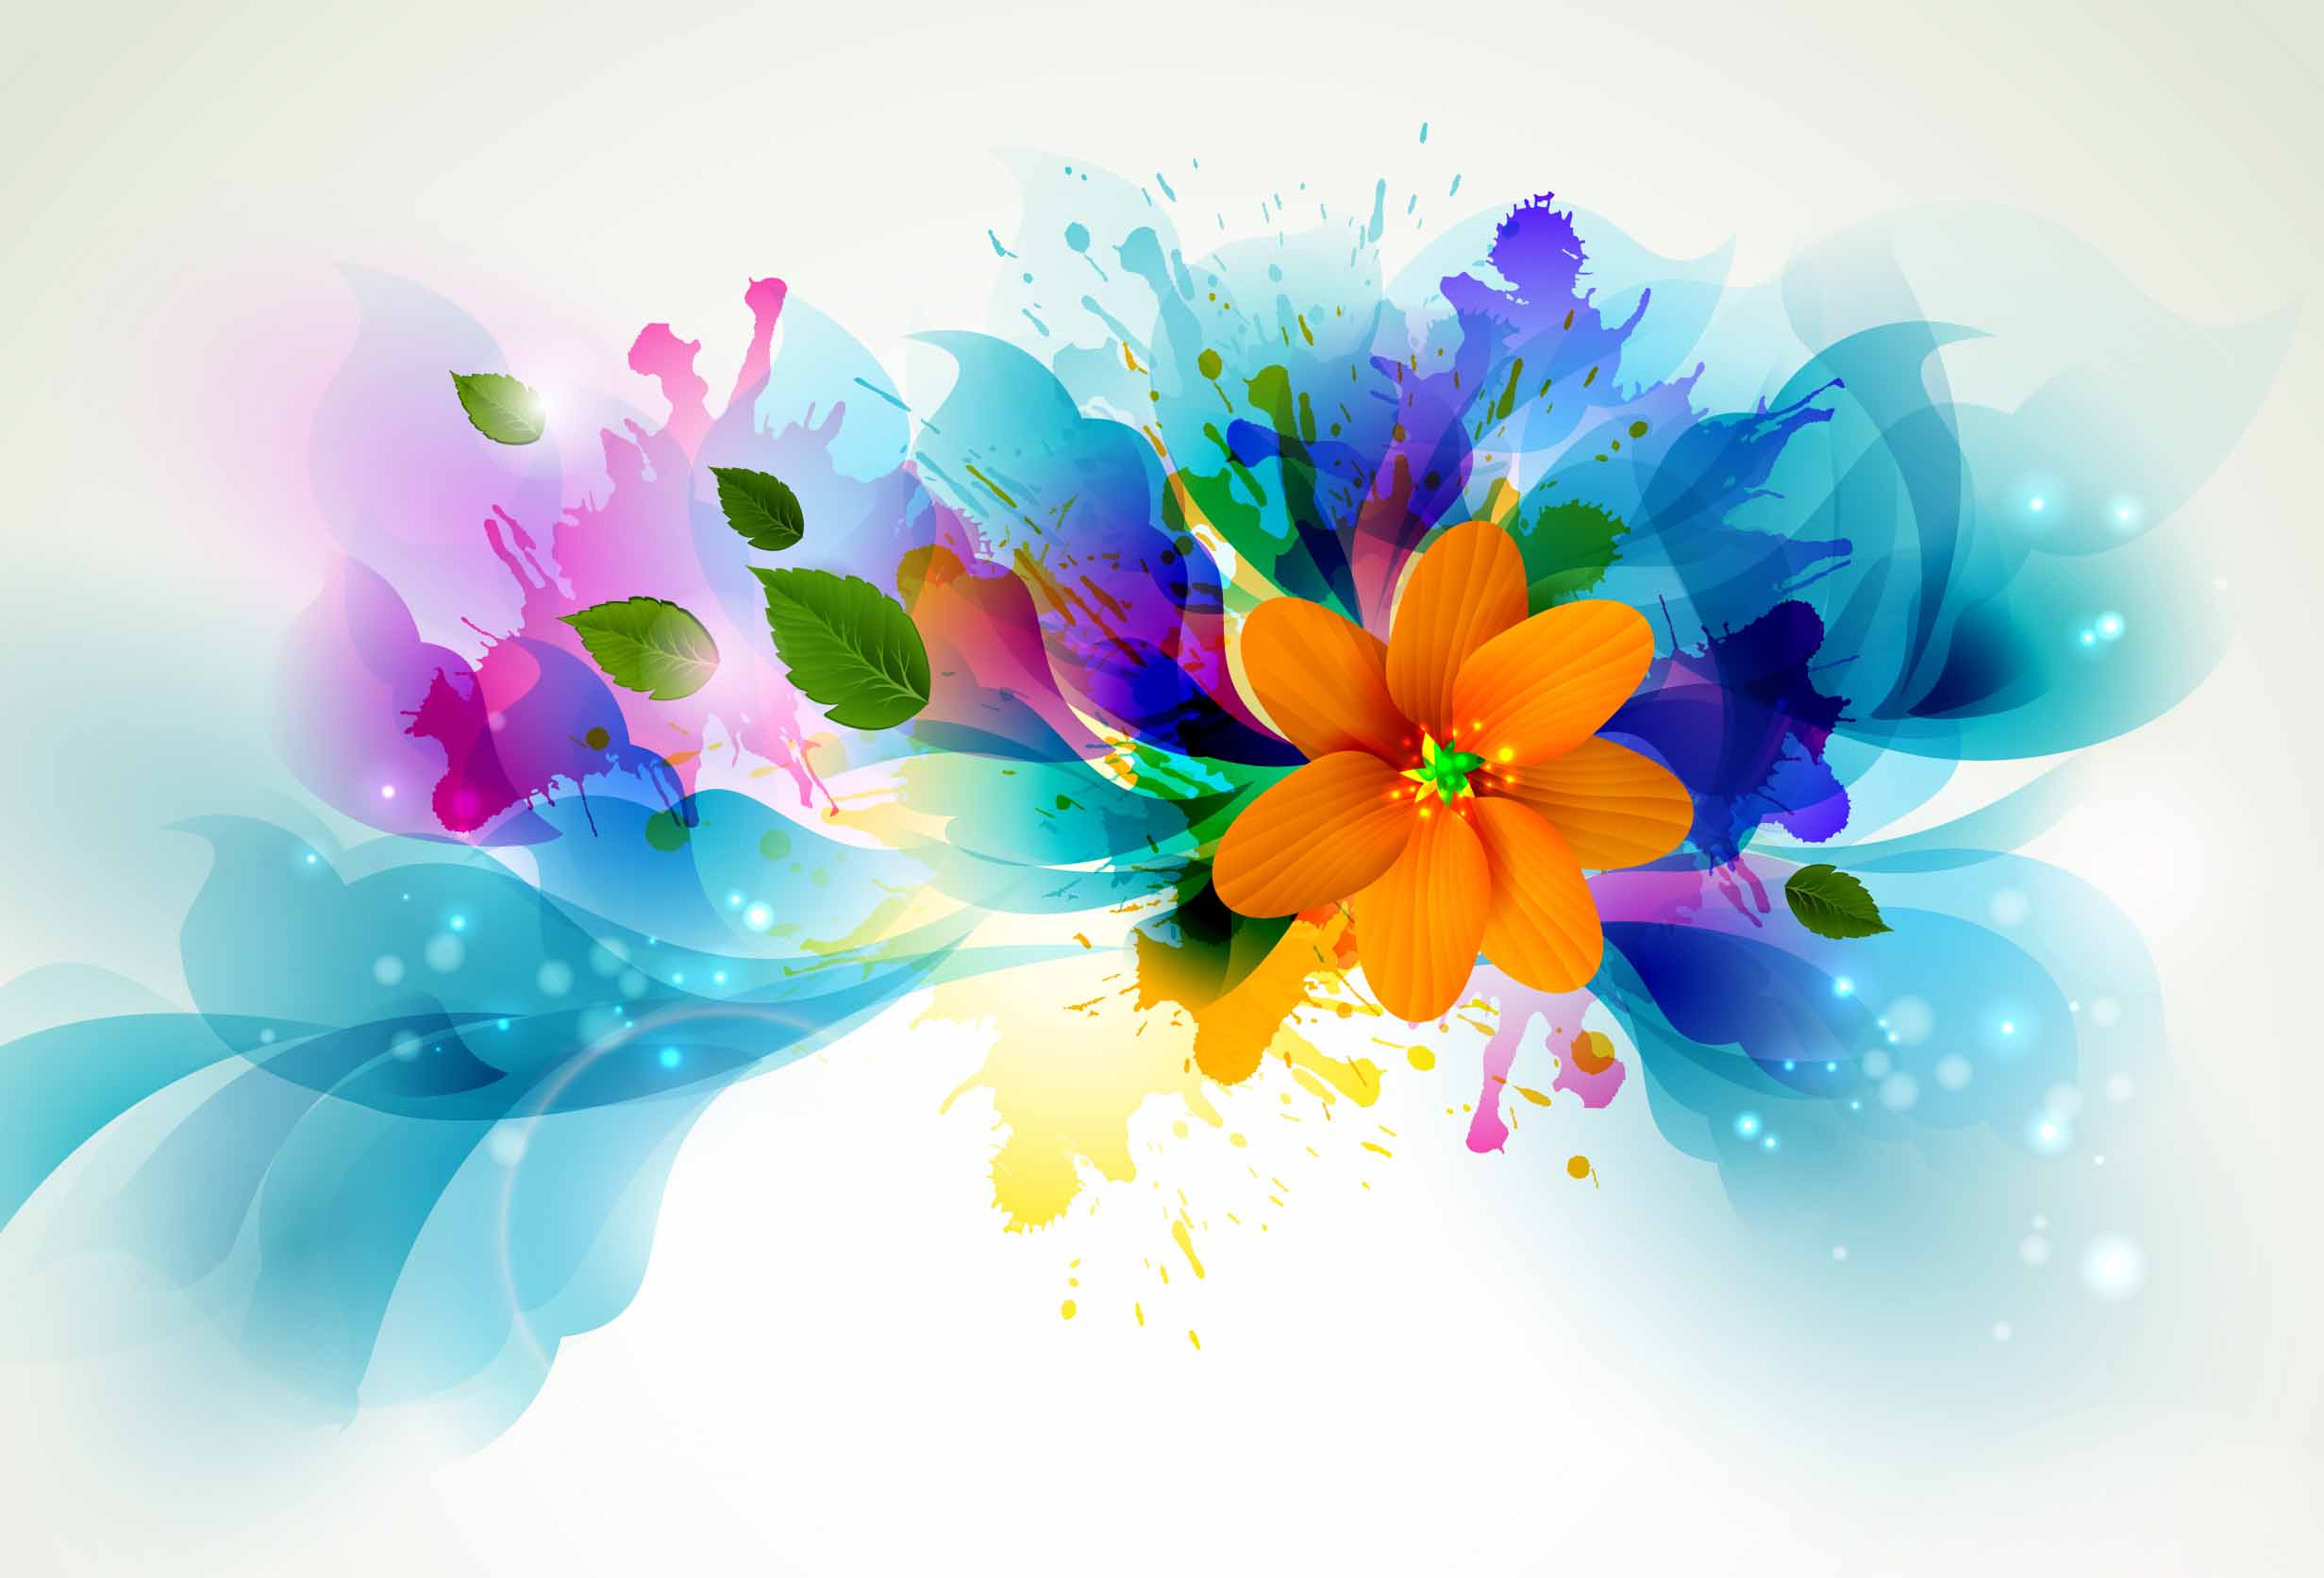 50 Beautiful Flower Wallpaper Images For Download 2463x1672